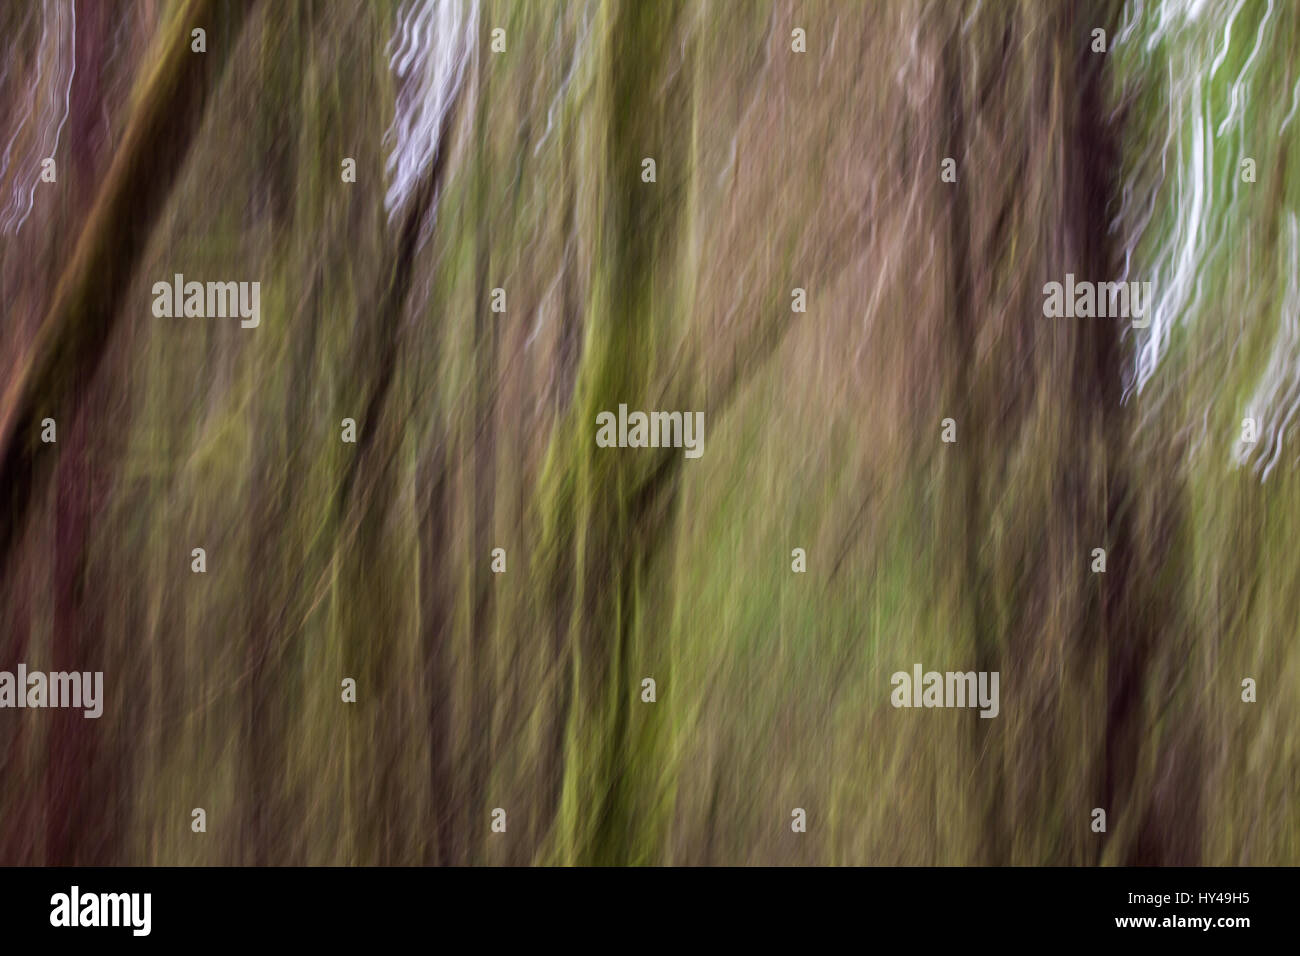 Abstract, impressionist-like image of West Coast rainforest.  Moss covered branches and tree trunks is blurred to - Stock Image